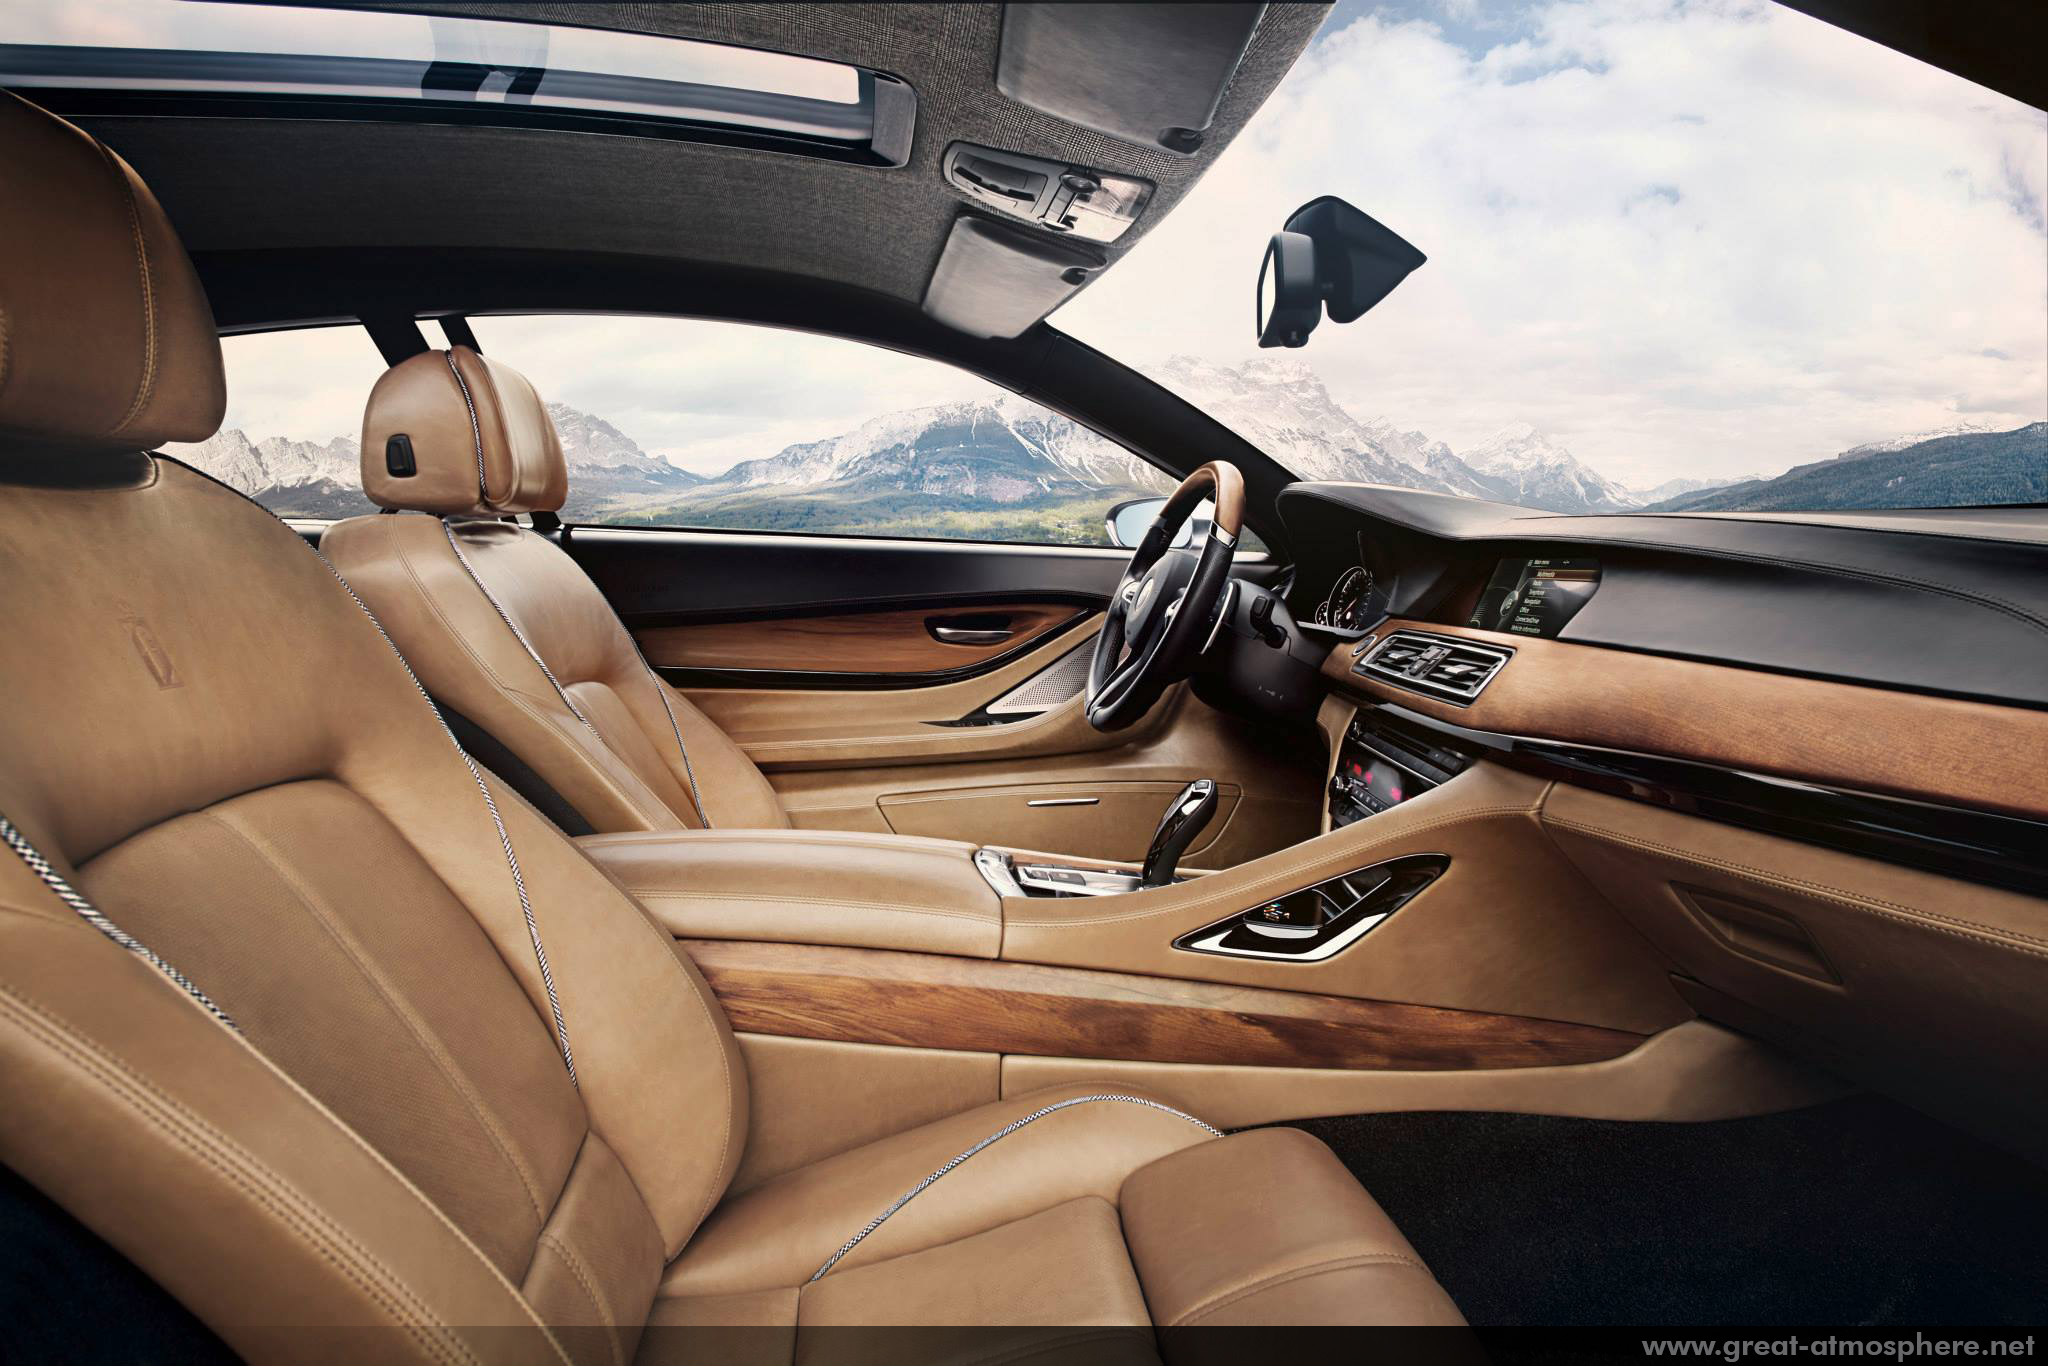 BMW-Pininfarina-Gran-Lusso-Coupe-great-atmosphere-amazing-car-2013